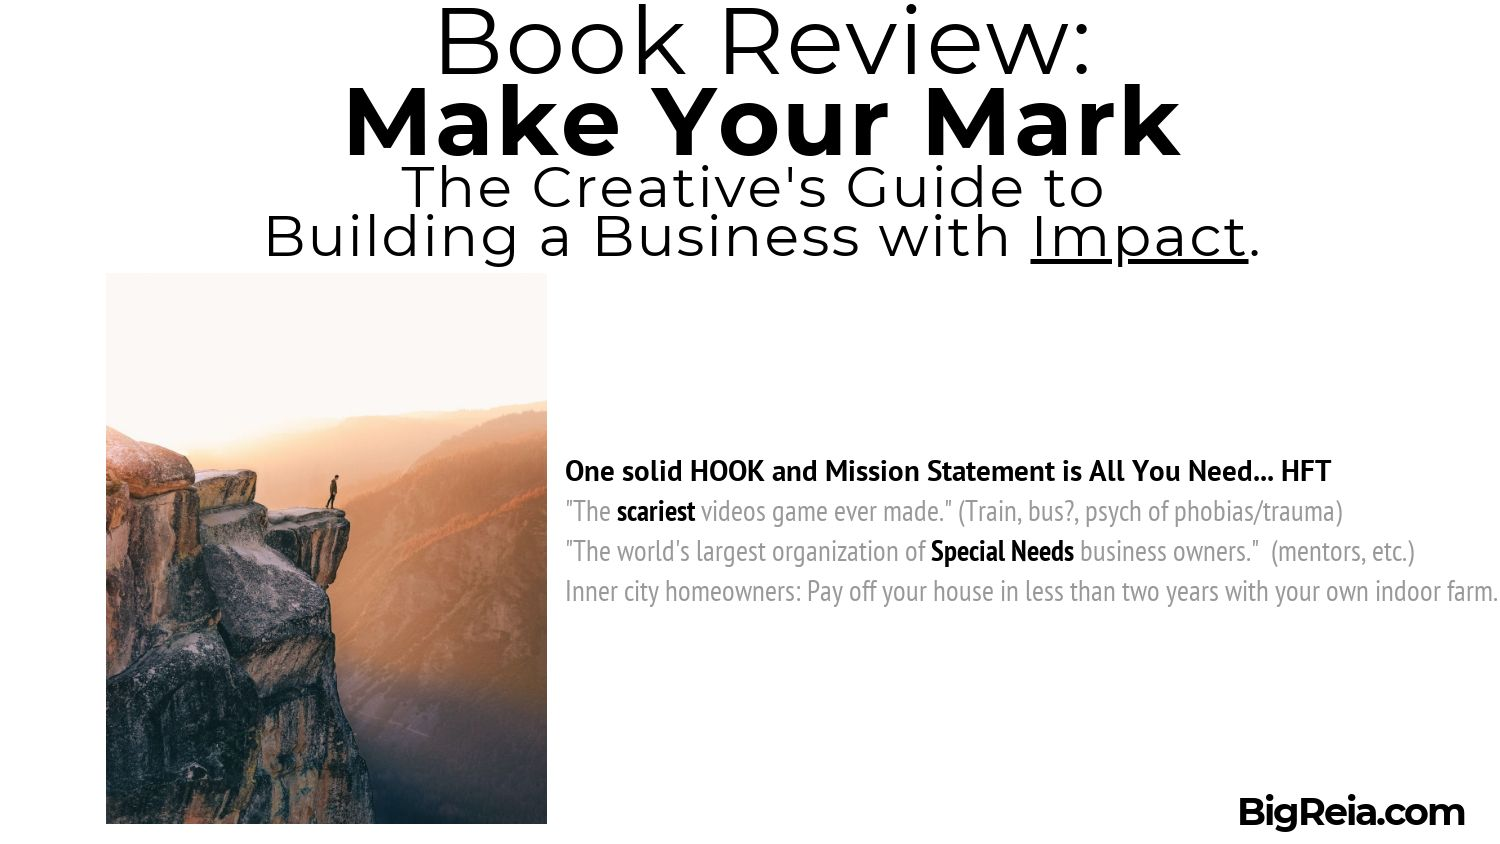 Make Your Mark book review fearless